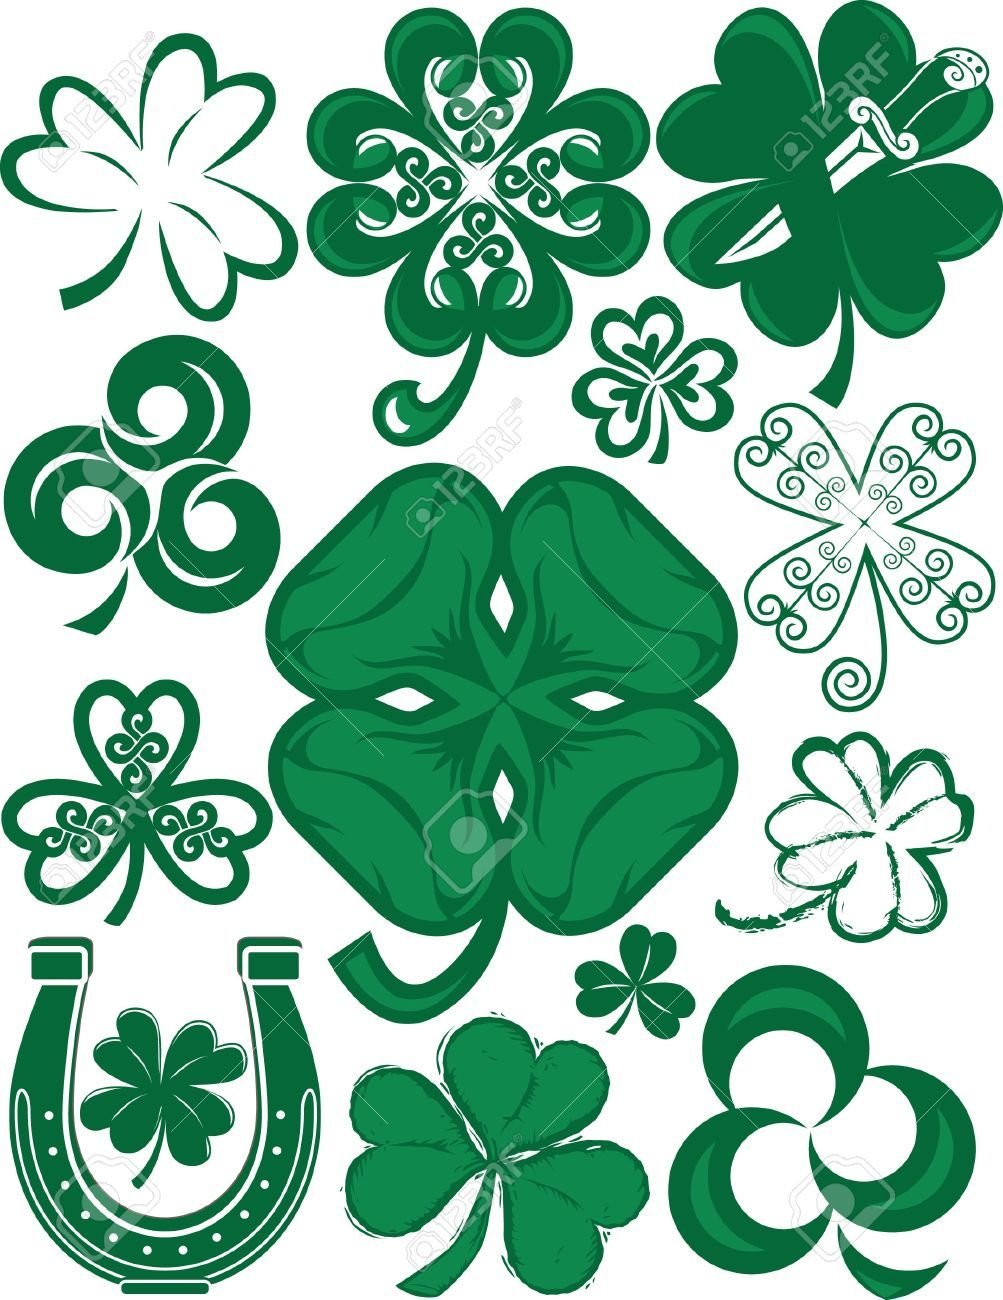 1003x1300 Clover Horseshoe Stock Photos Images, Royalty Free Clover St